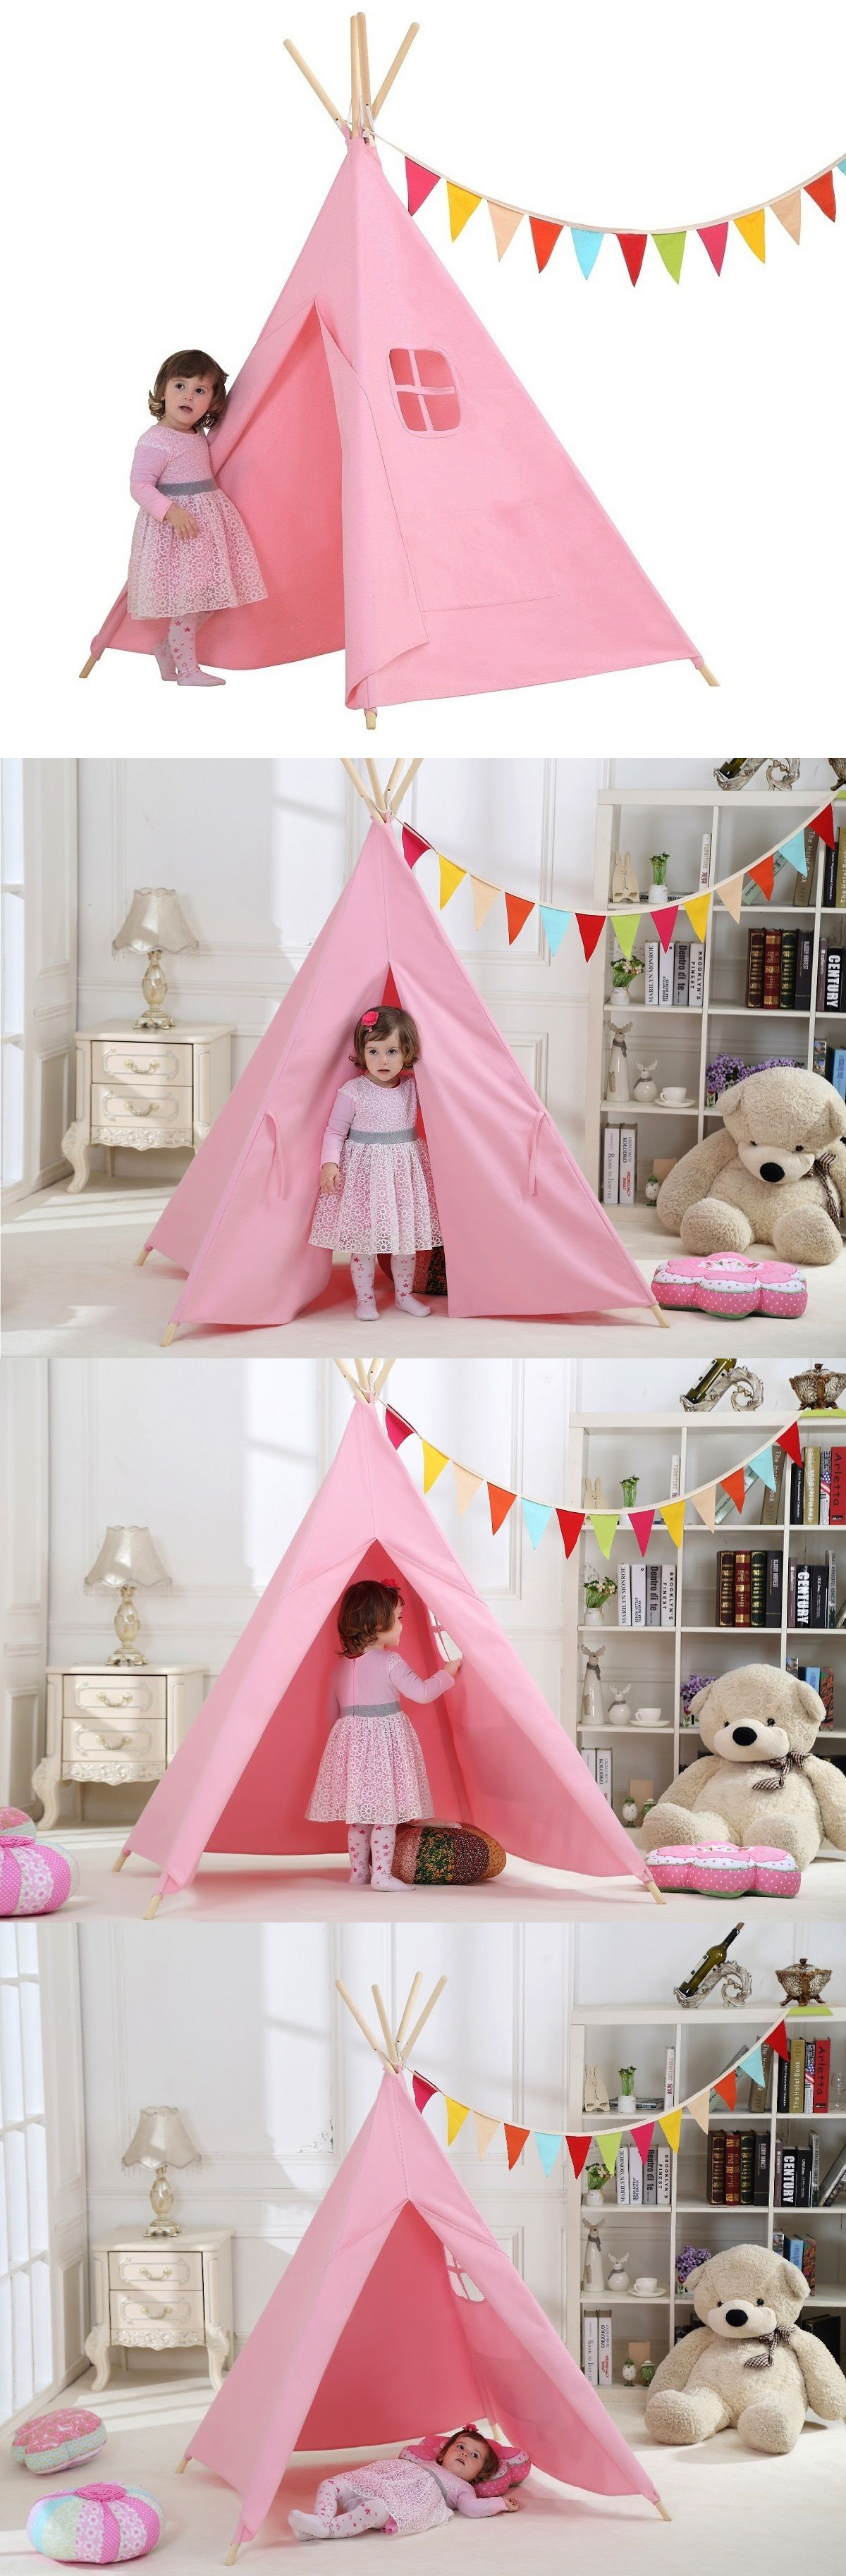 d0d3d161c5b4 Play Tents 145997 100% Cotton Canvas Pink Girl Play Tent Indoor Play Teepee  Tent